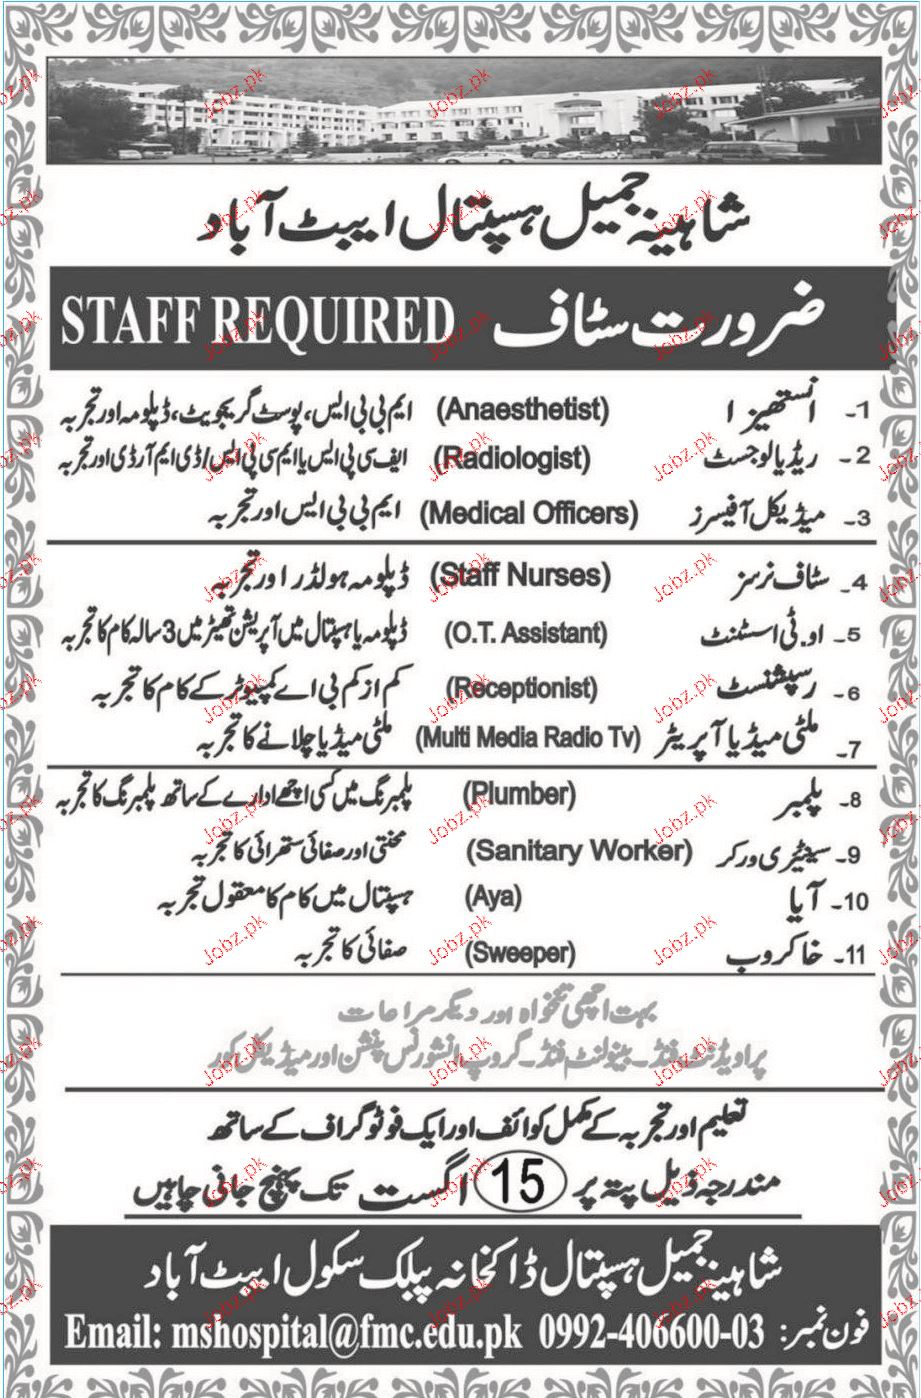 Medical Officers, Radiologists Job Opportunity